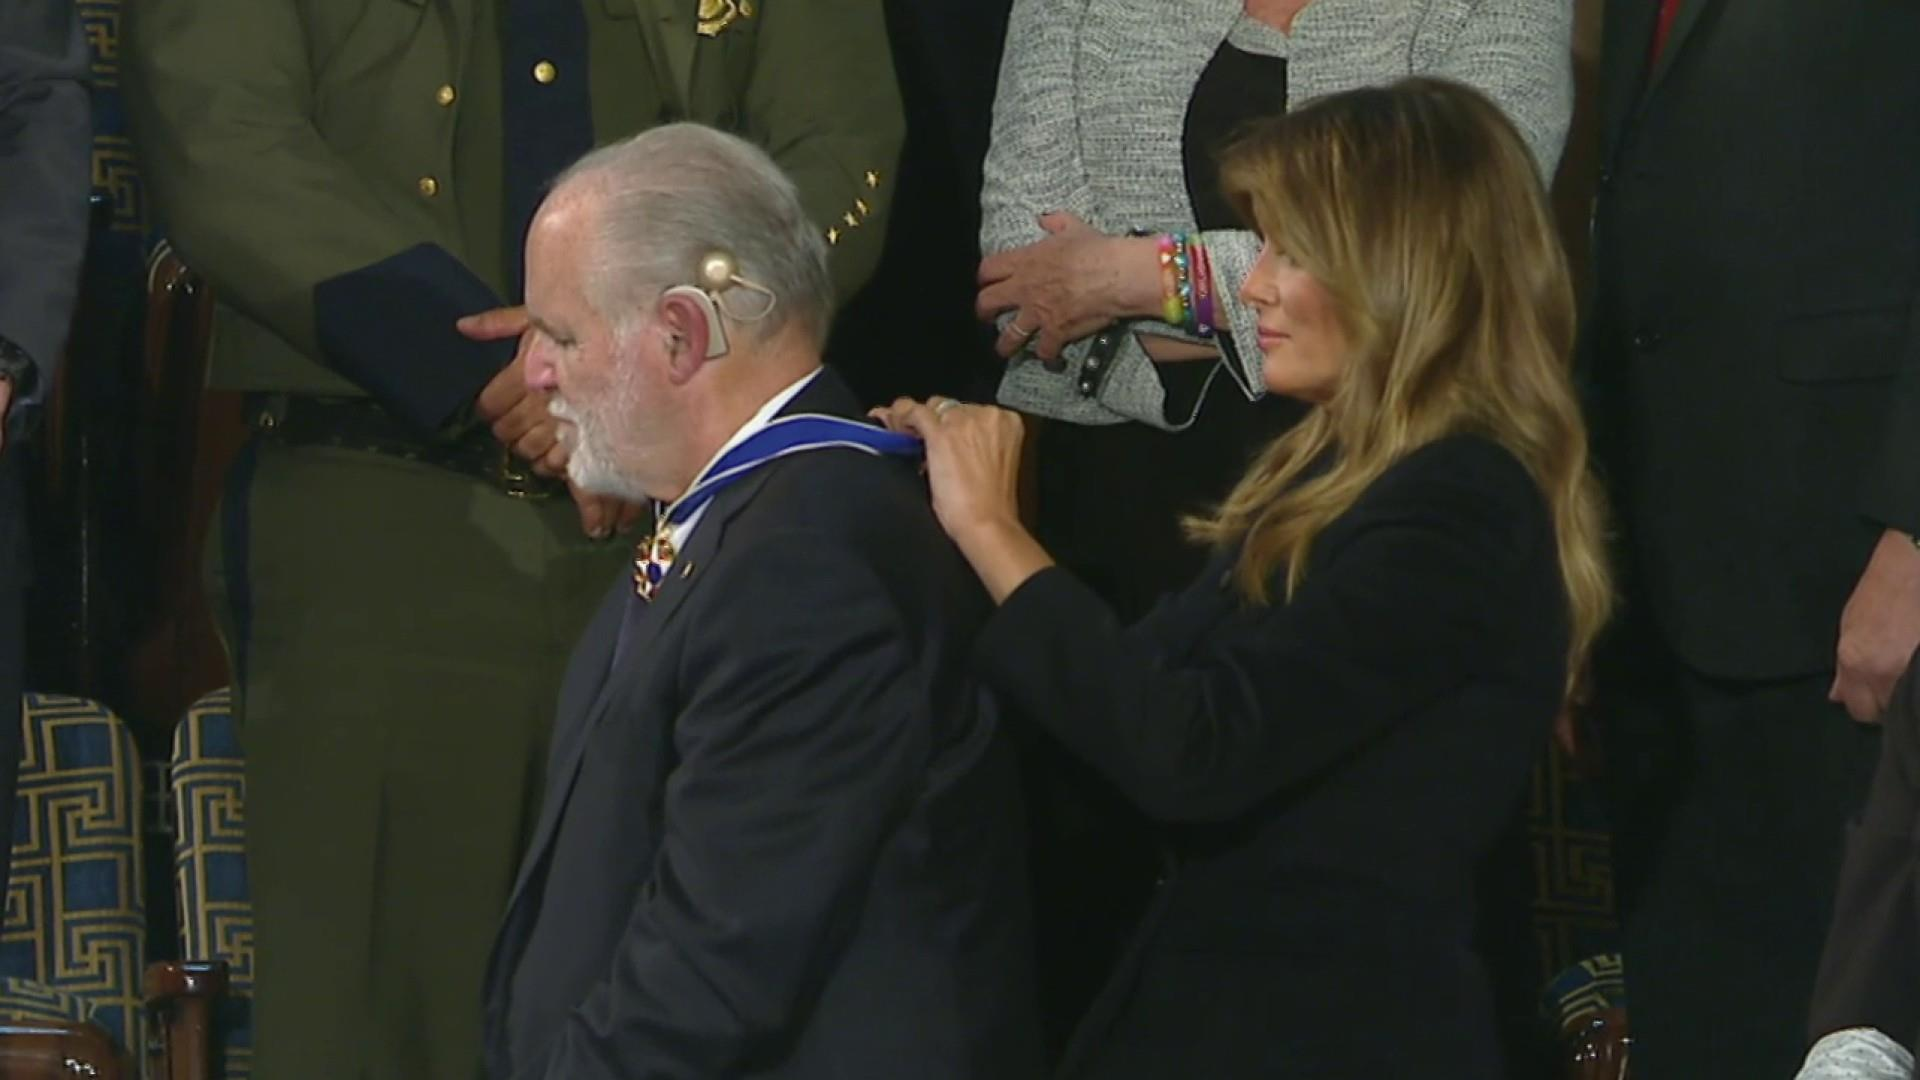 'Nauseating': Trump blasted for giving Rush Limbaugh the Medal of Freedom